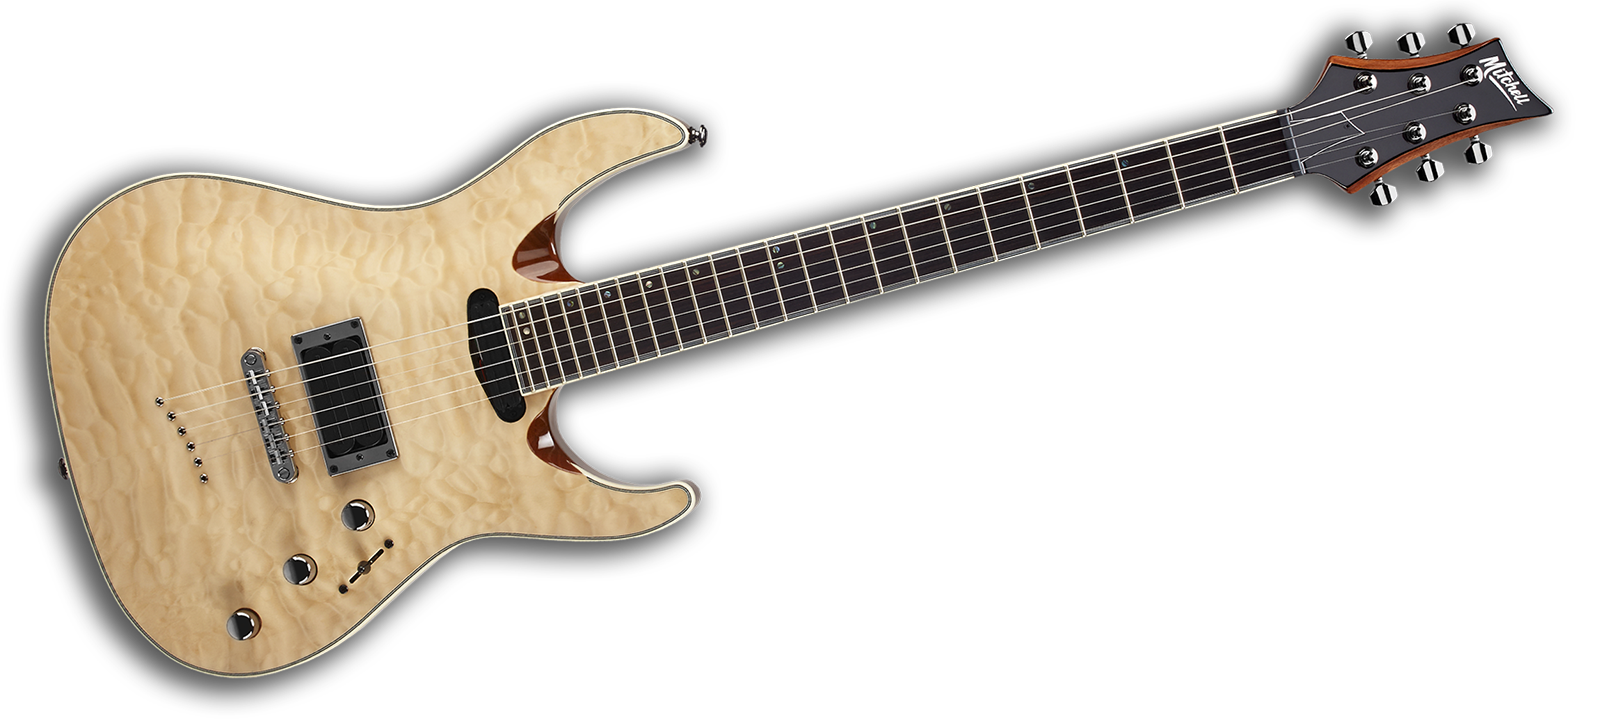 Youtube clipart guitar. Mitchell guitars md image